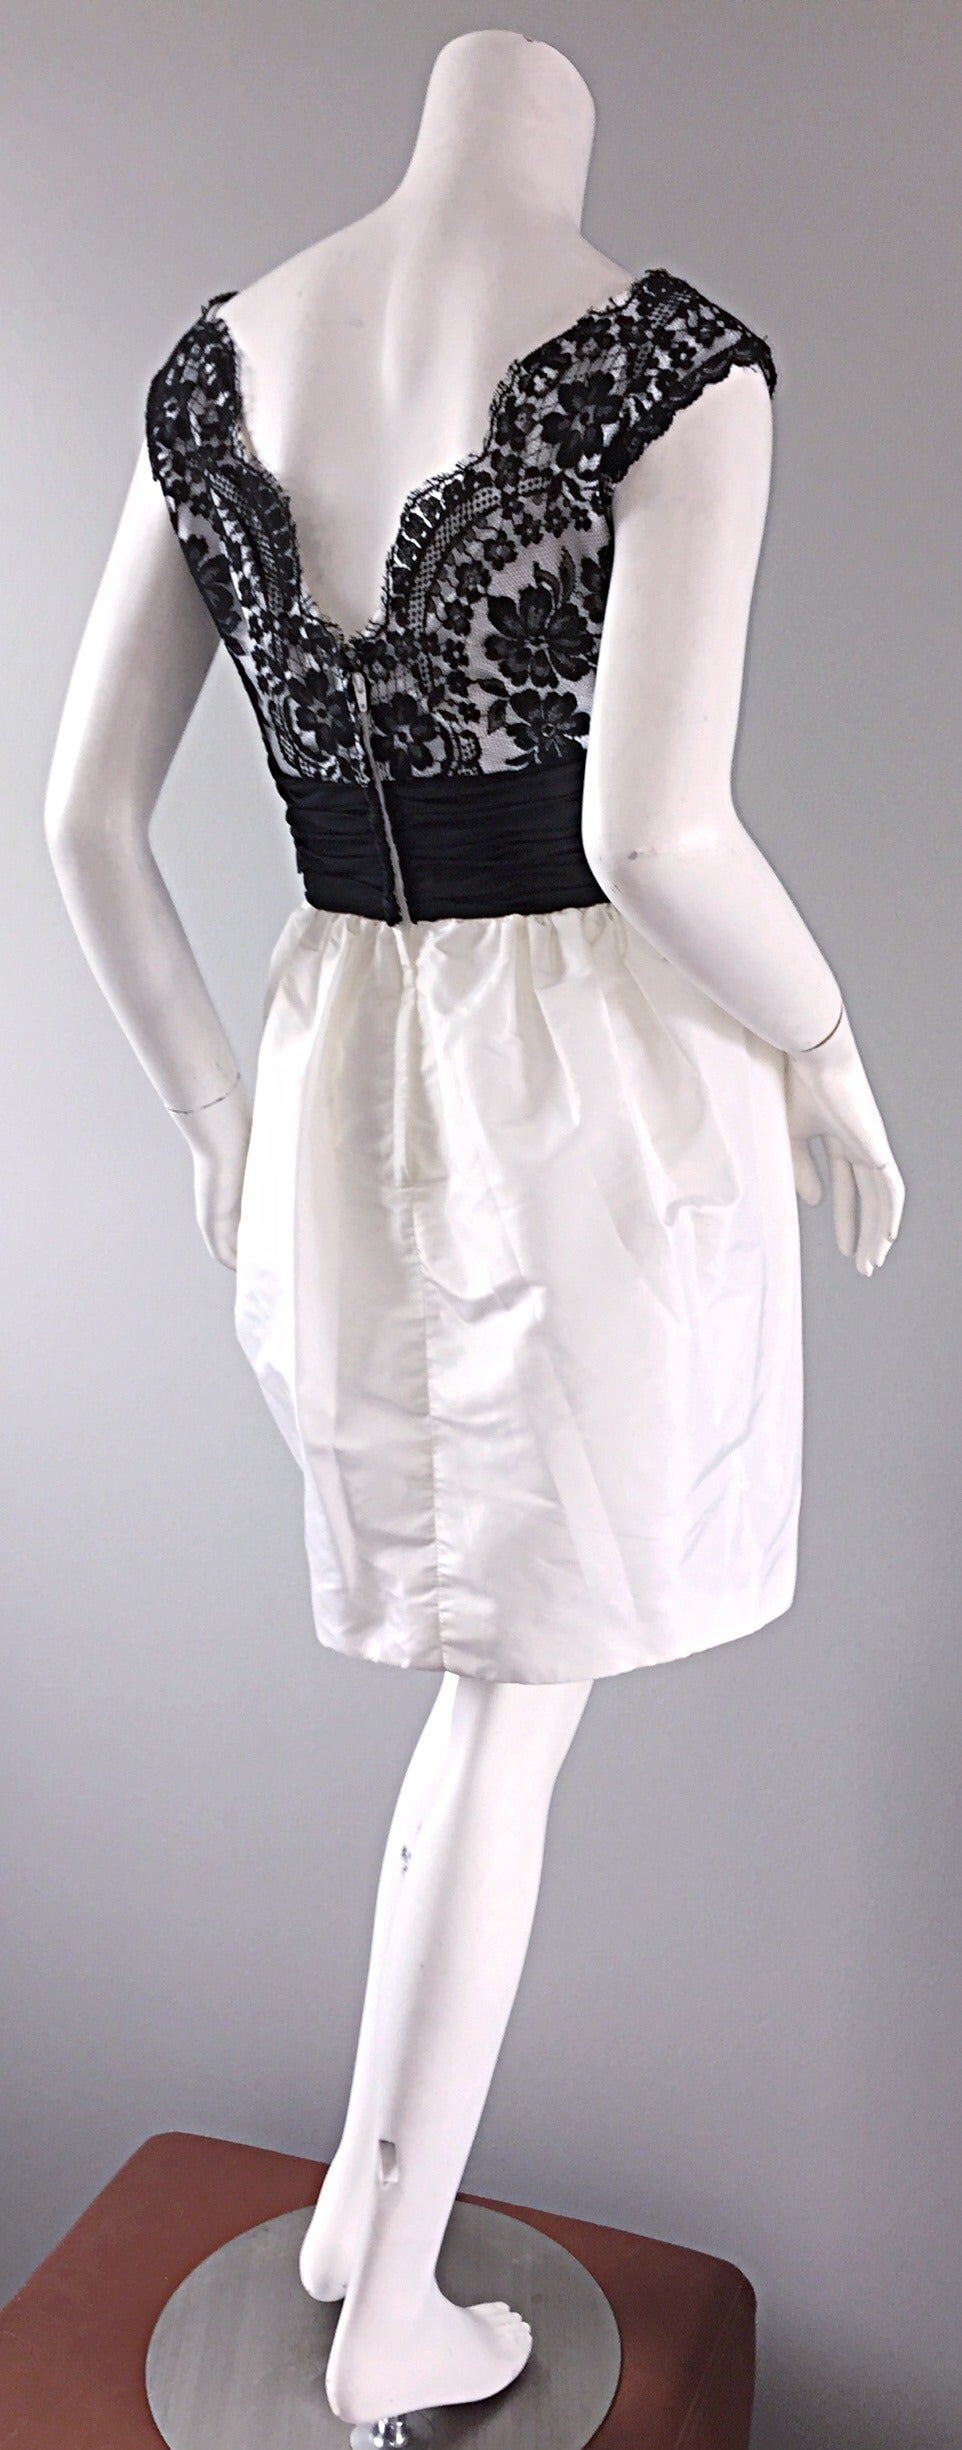 Vintage Victor Costa Black + White Silk Taffeta Lace Cocktail Dress In Excellent Condition For Sale In San Francisco, CA